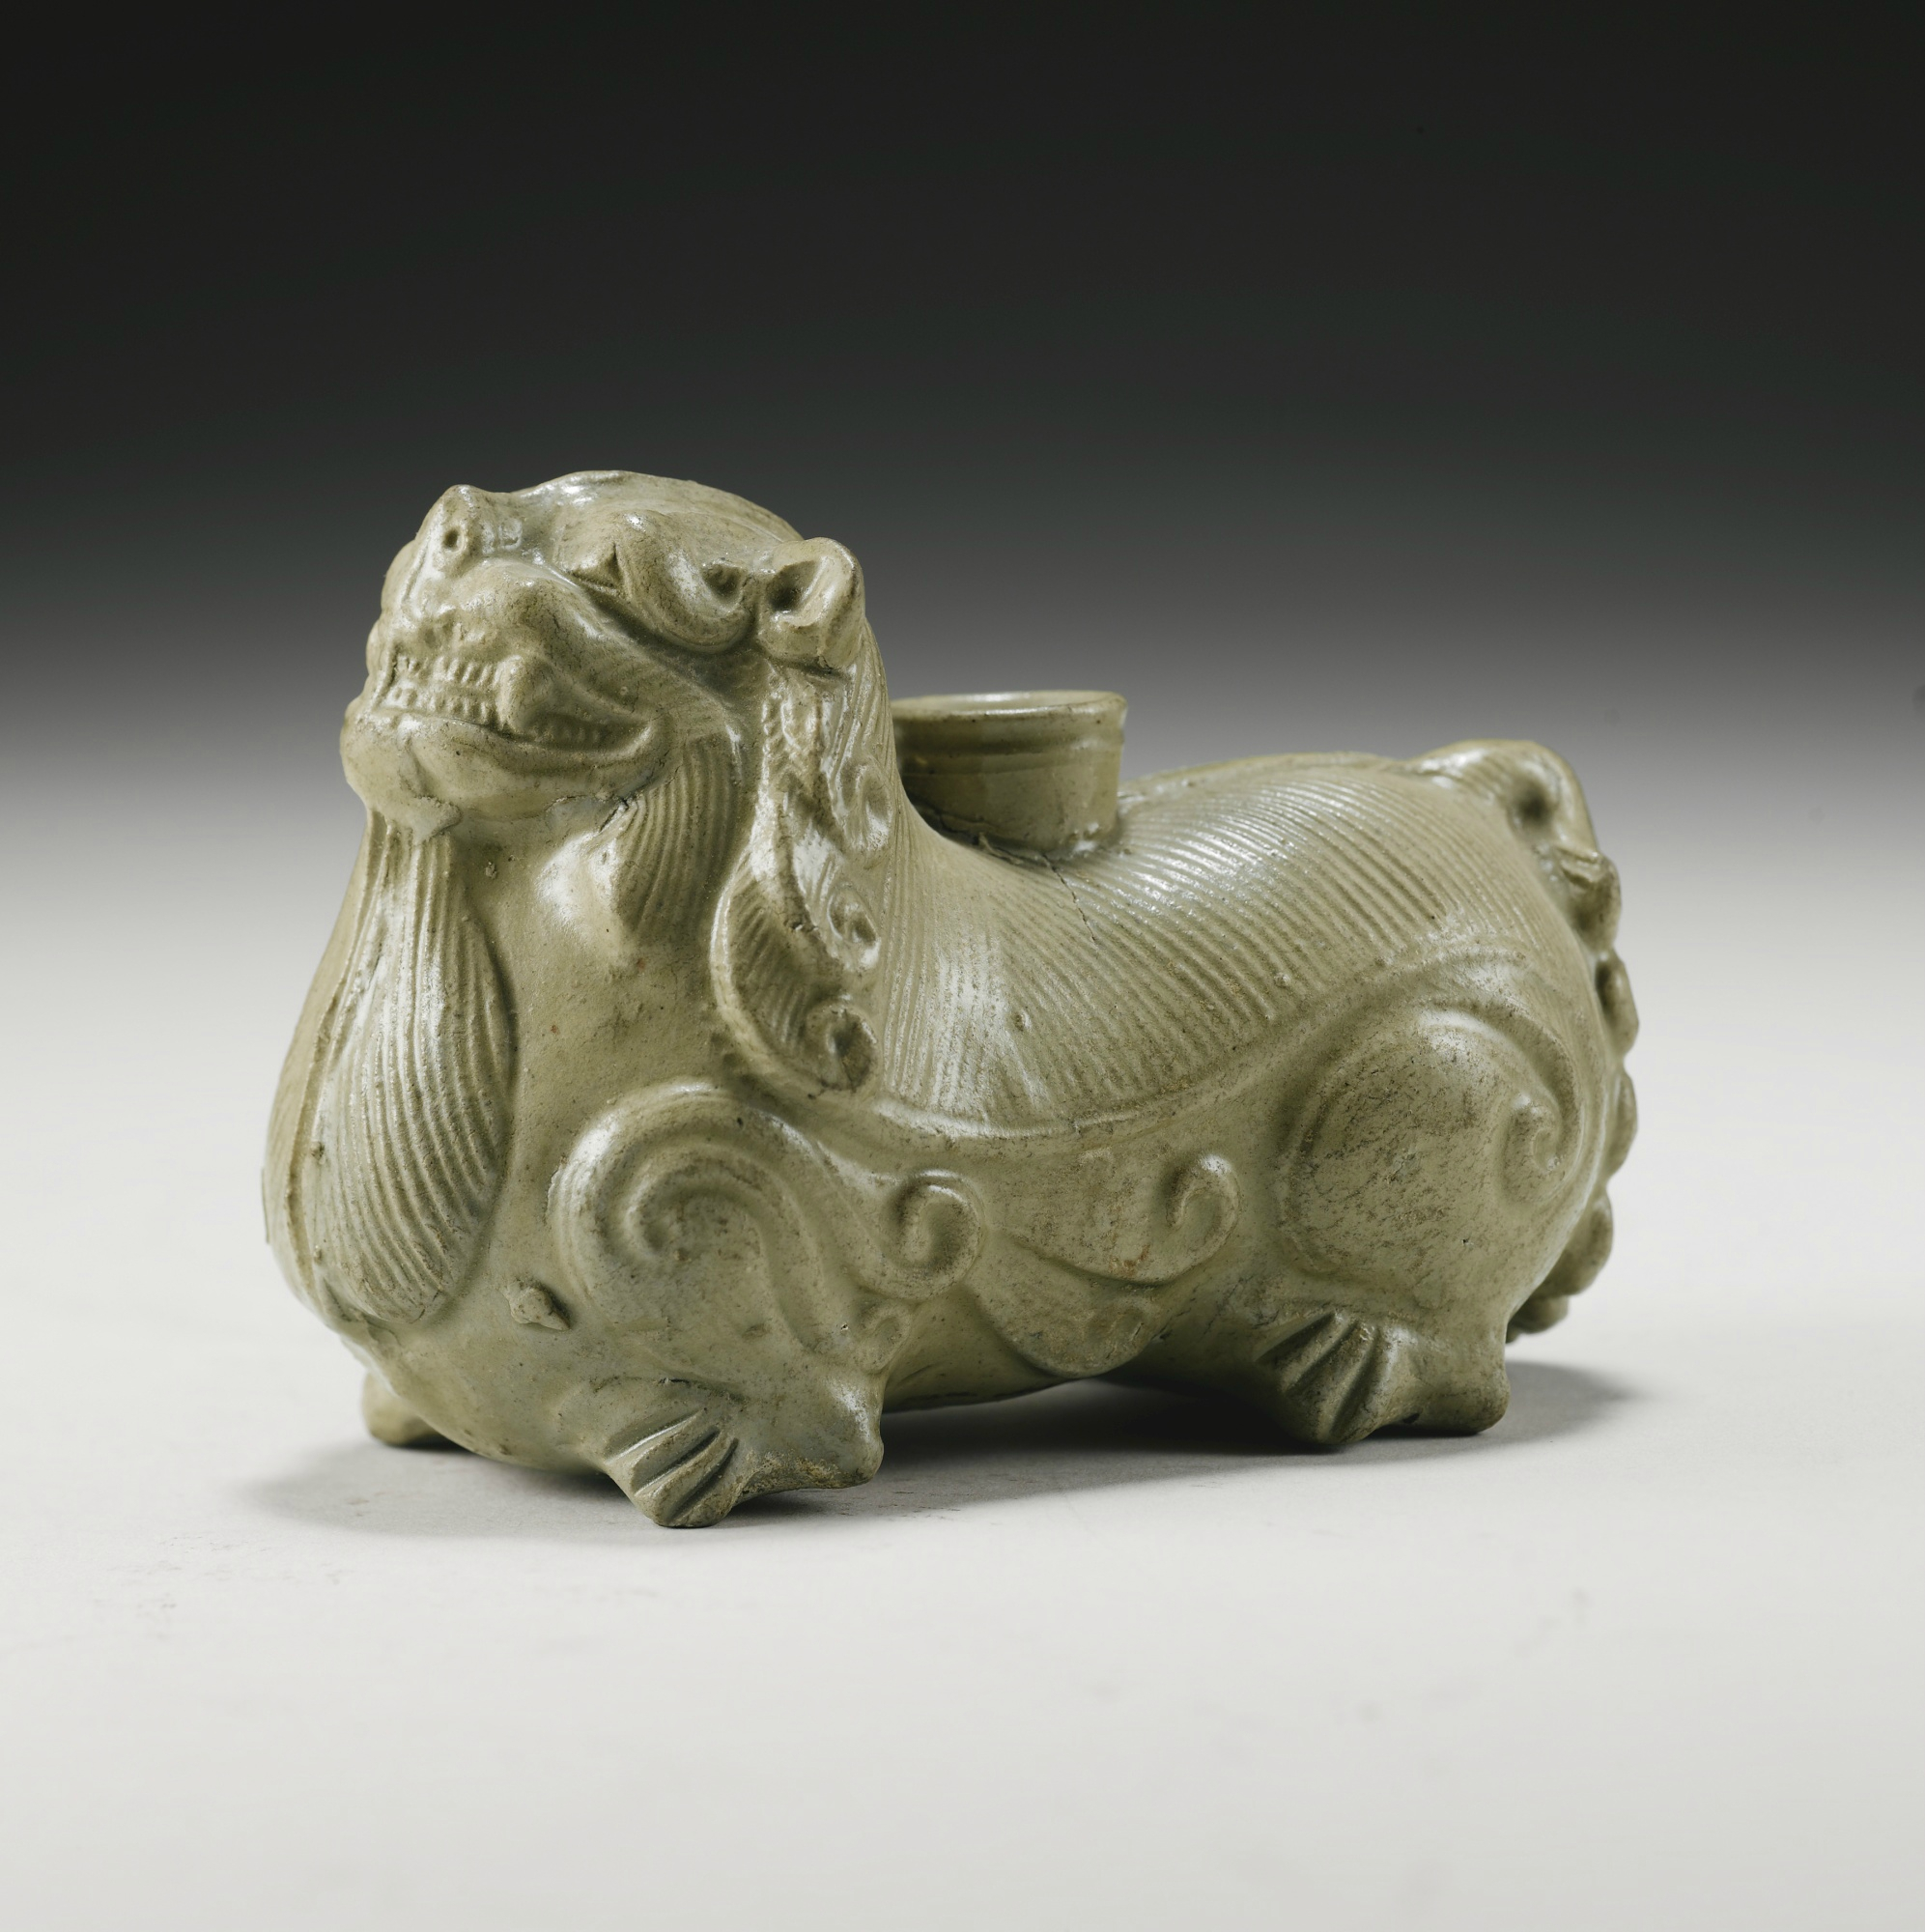 A 'Yue' Green-Glazed 'Lion' Incense Burner, Western Jin Dynasty (265 - 316)